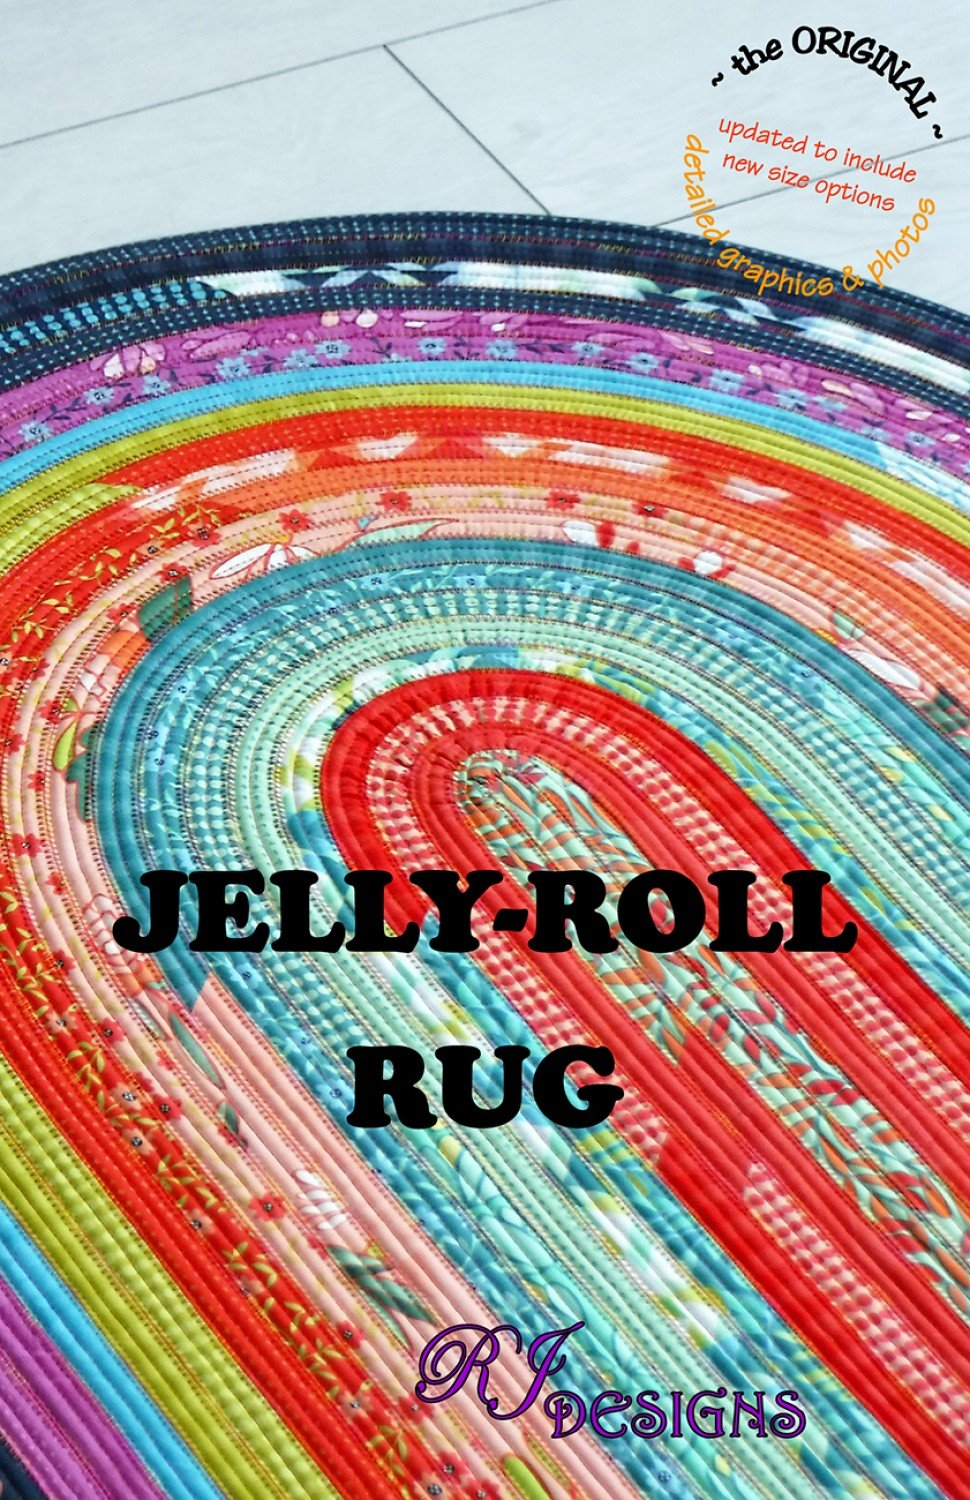 Jelly Roll Rug Pattern From R.J. Designs By Roma Lambson